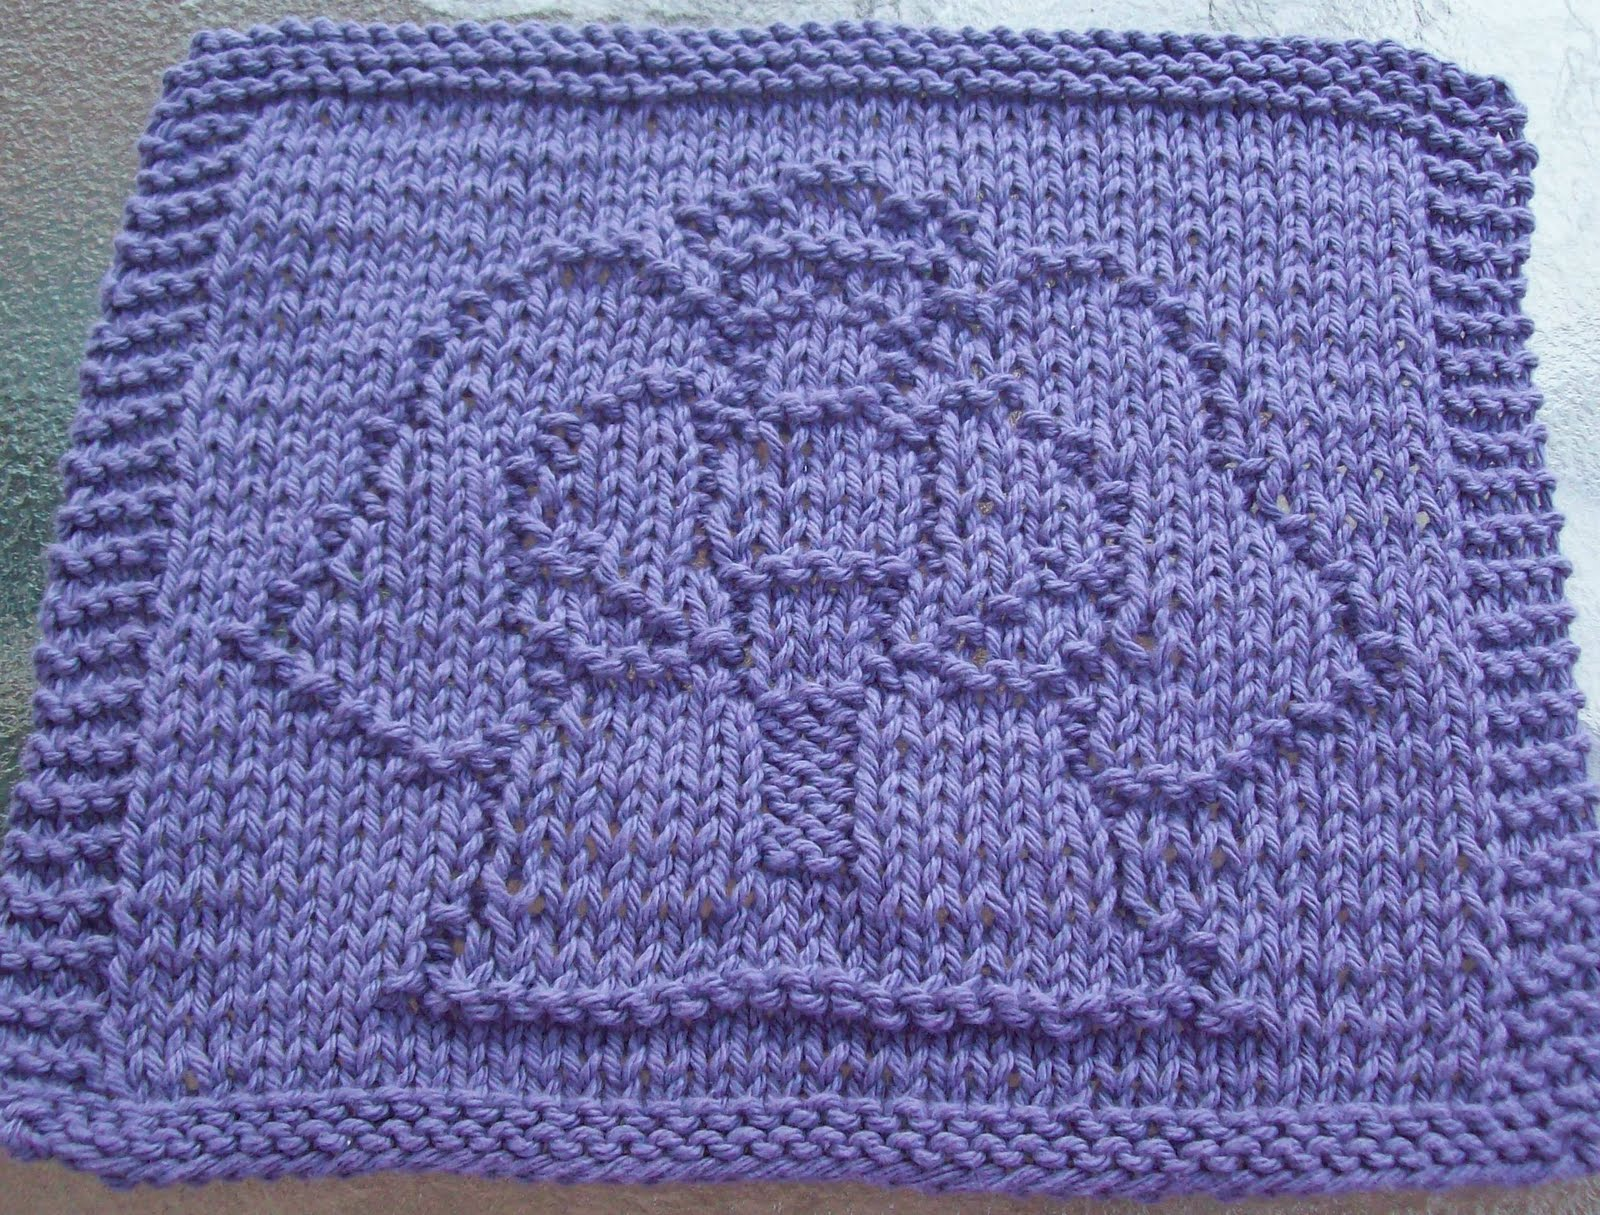 Dishcloth Knitting Pattern : DigKnitty Designs: Angel Knitting Knit Dishcloth Pattern